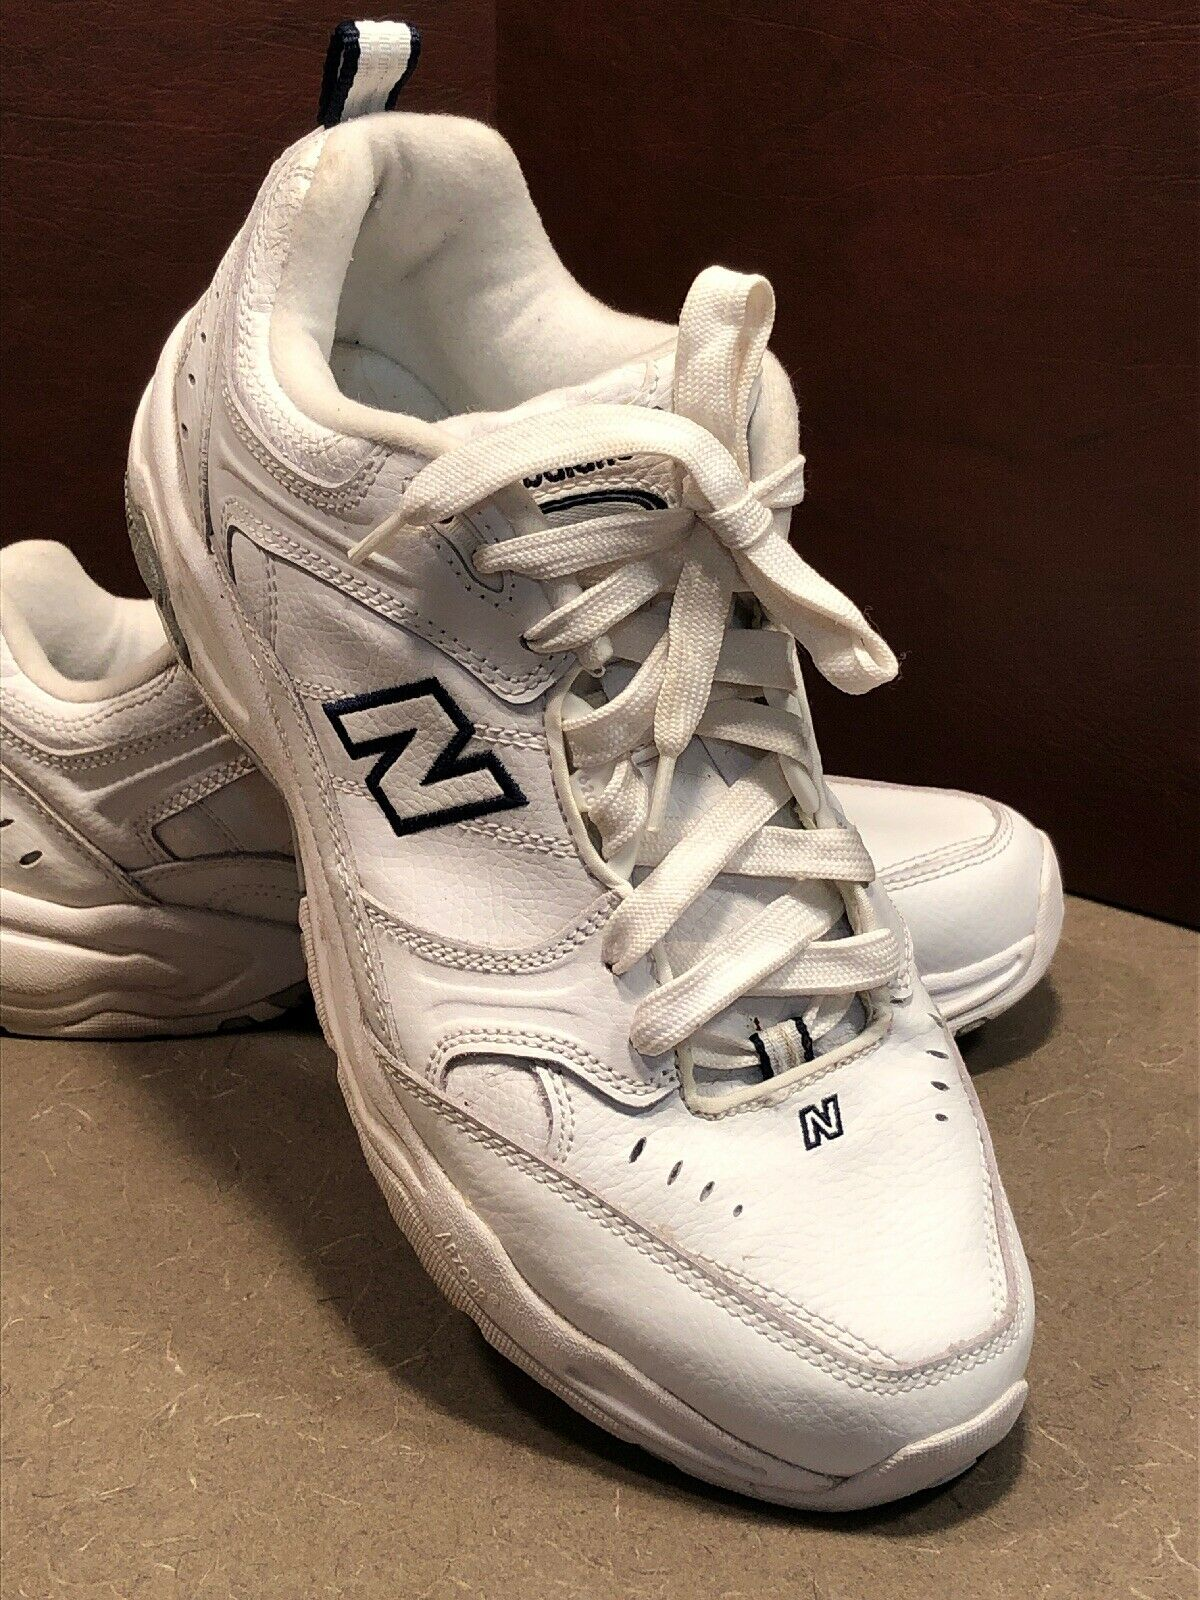 New Balance Wide  WX620WT 620 Cross Trainers Sz 11 D Leather white   navy